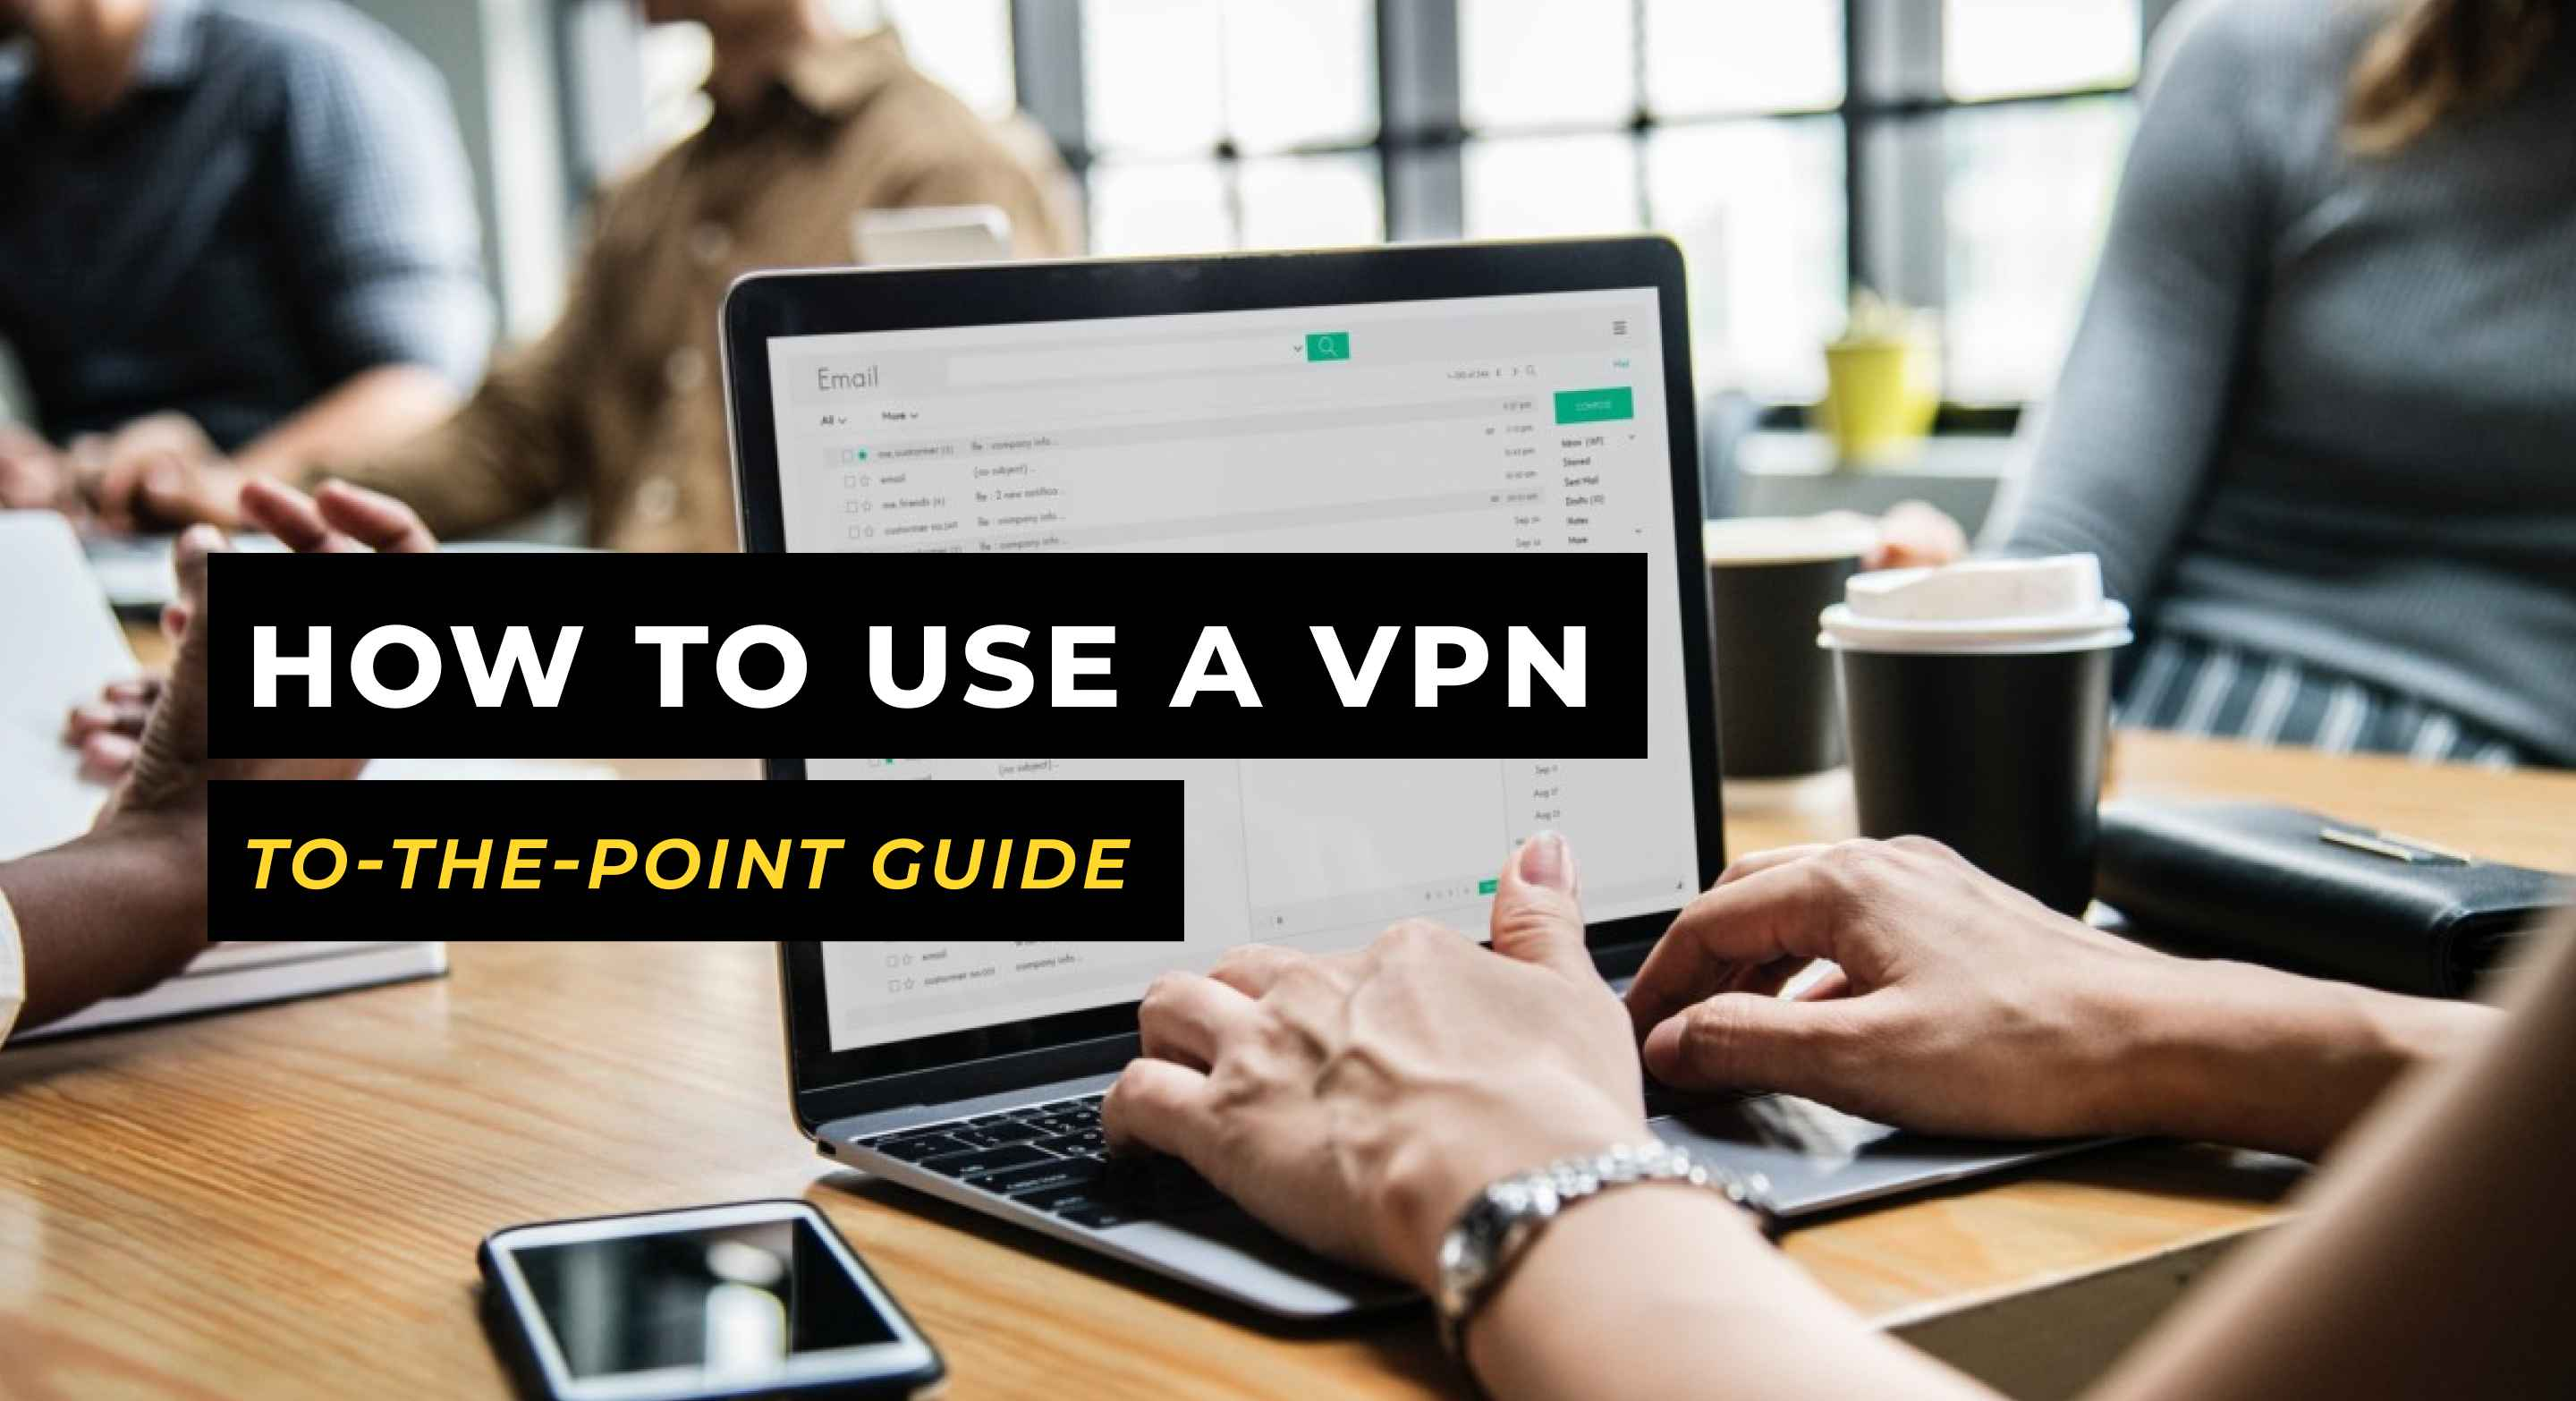 How To Use A VPN - a Simple, Straightforward, and To-The-Point Guide